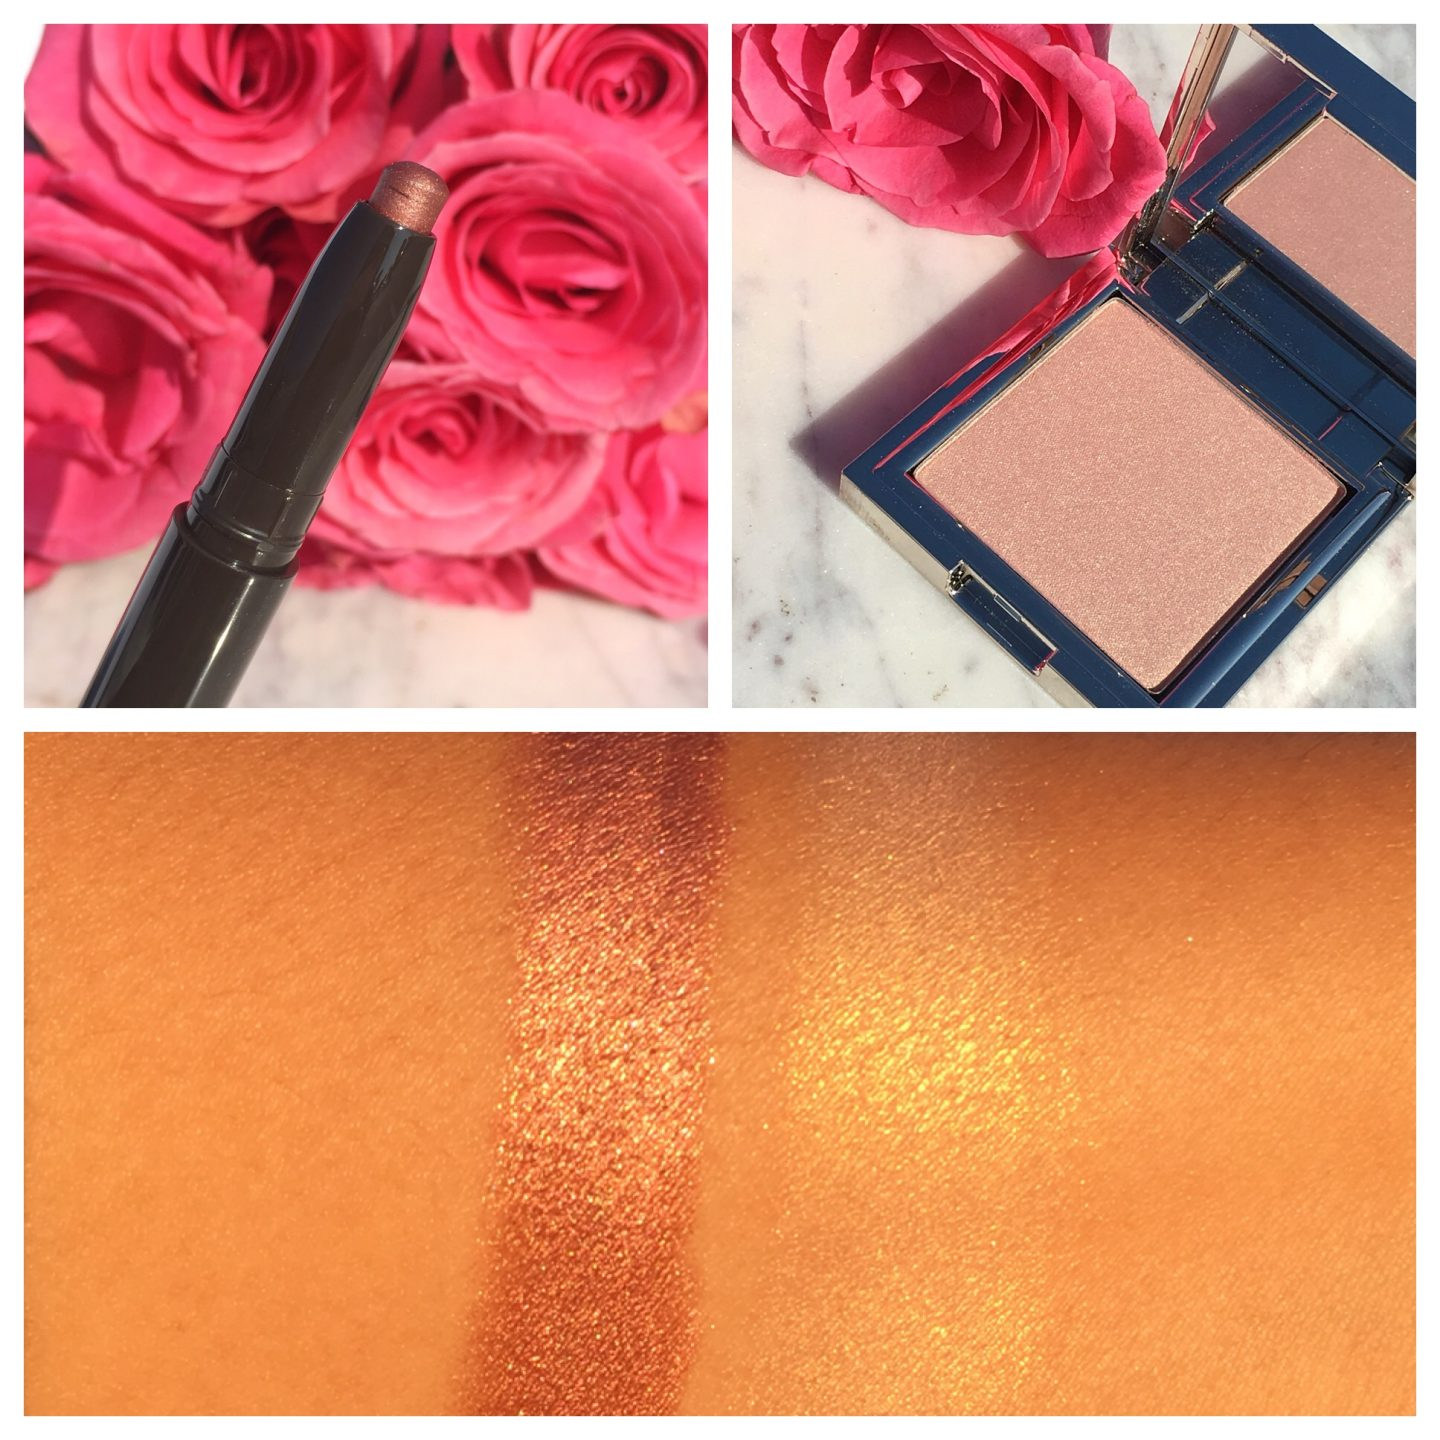 Jouer Rose Gold Collection Review Swatches www.calibeaute.com